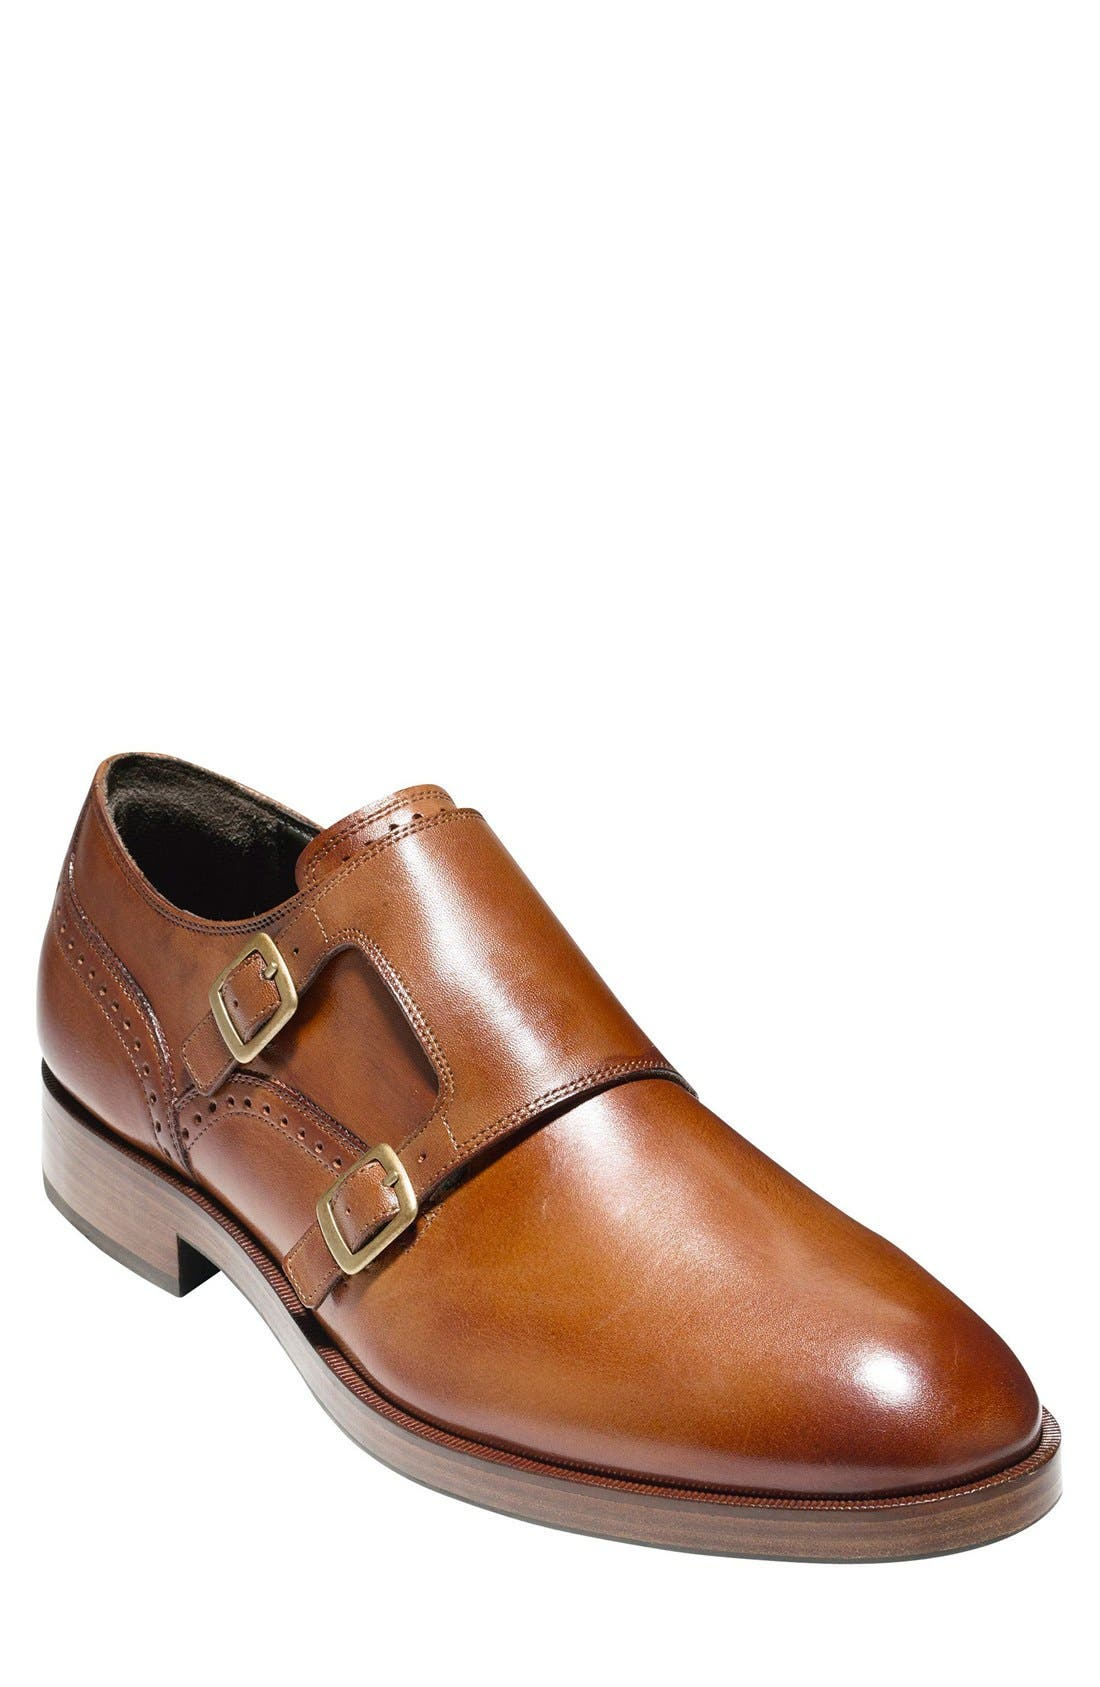 'Harrison' Double Monk Strap Shoe,                             Main thumbnail 1, color,                             BRITISH TAN LEATHER